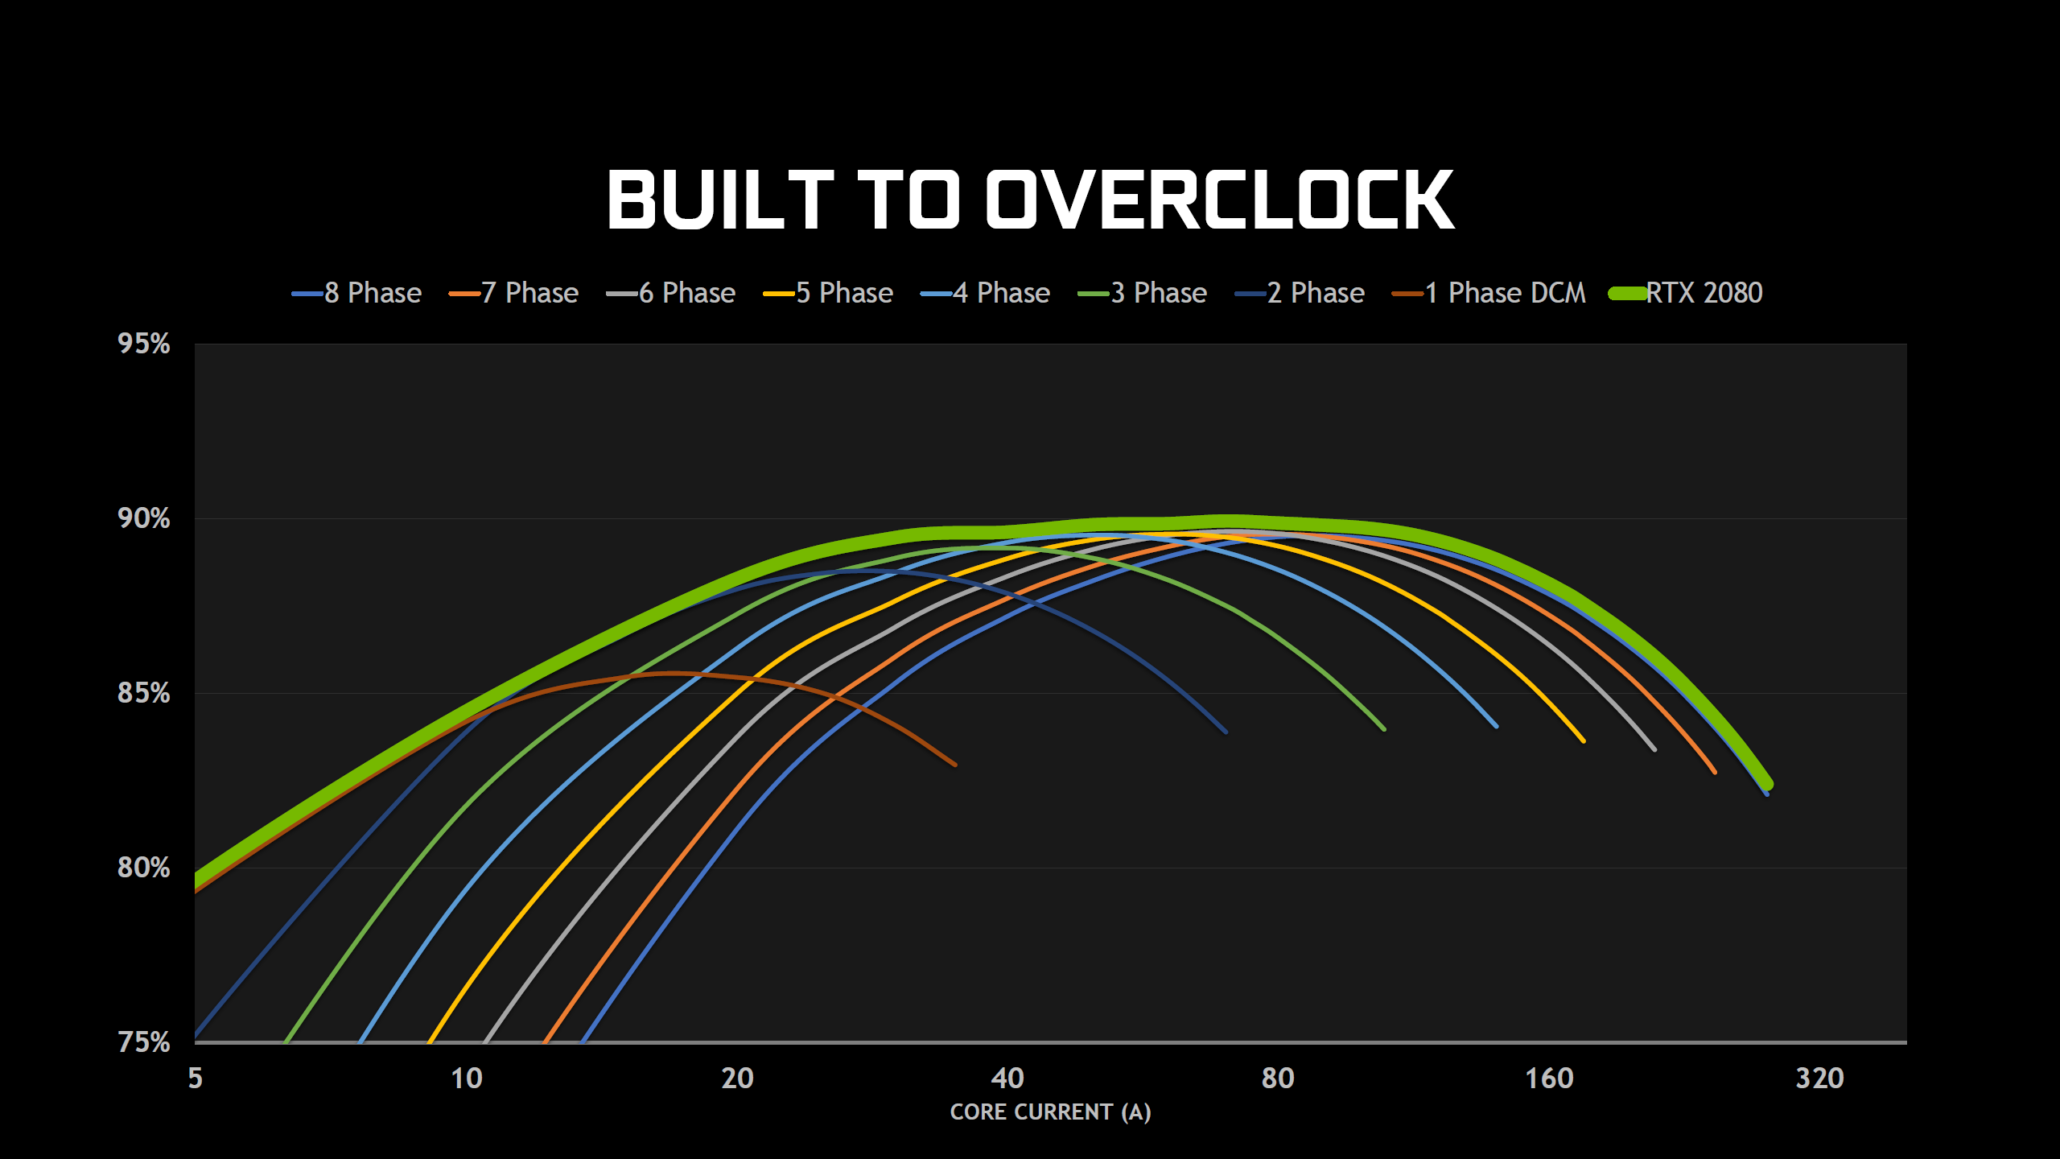 nvidia-geforce-20-series_official_geforce-rtx_overclock_5